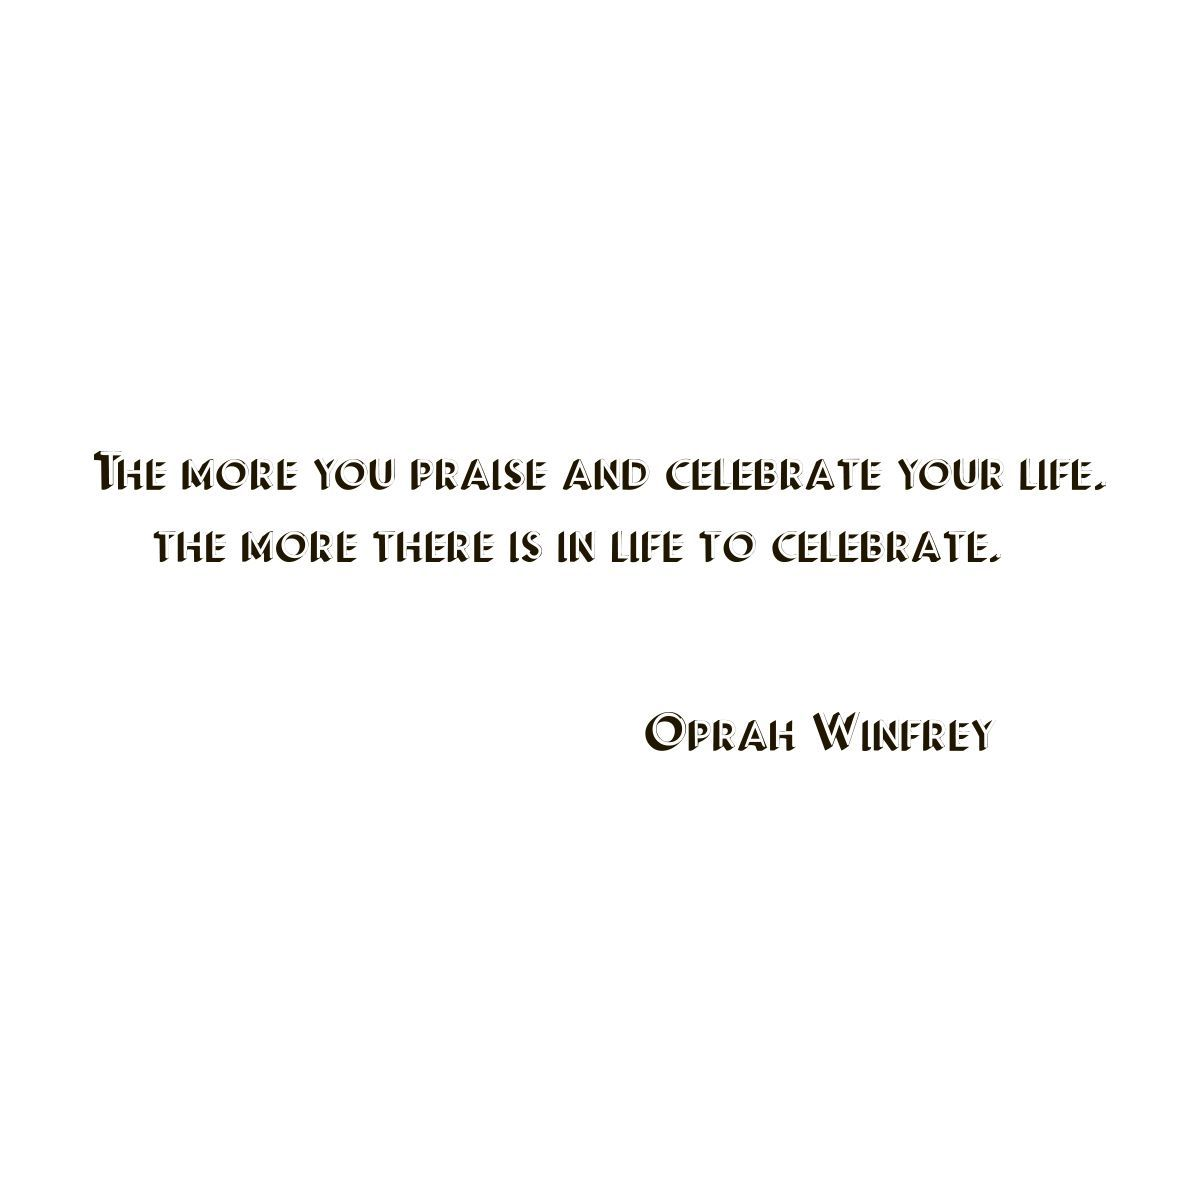 Quotes To Celebrate Life Quote Saying Oprah Winfrey Celebrate Life Vinyl Wall Art Decal